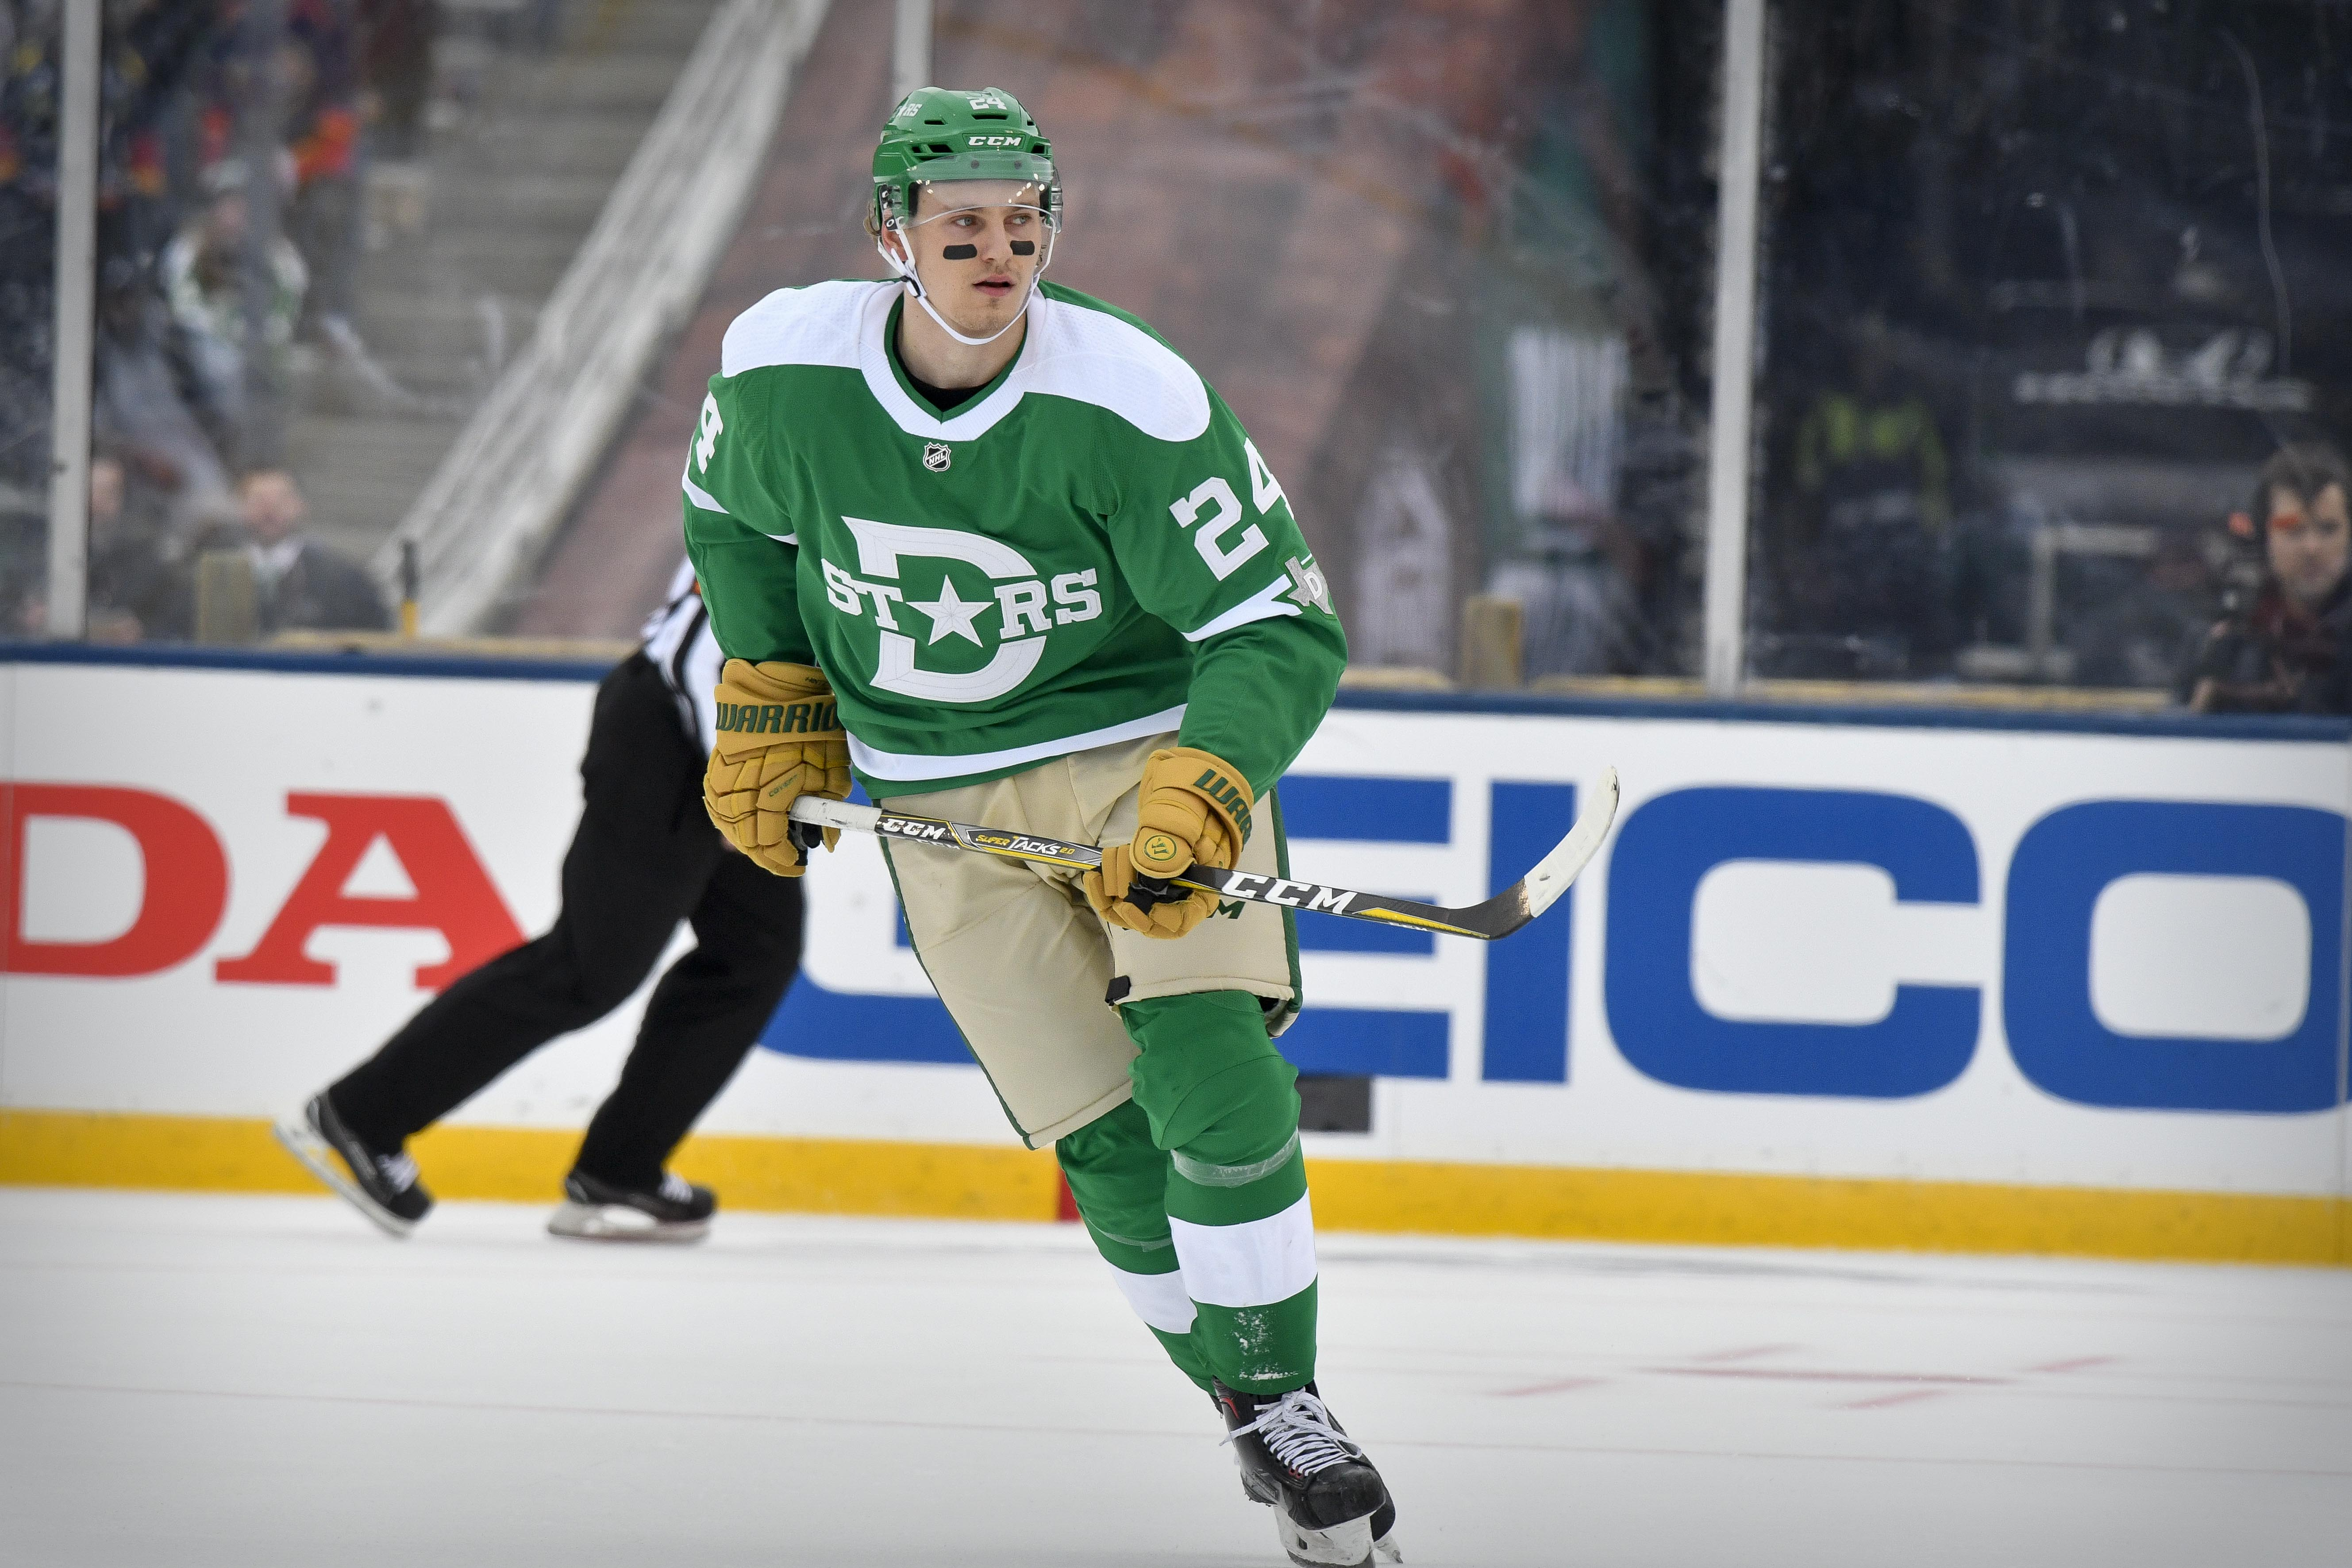 Dallas Stars are the hottest team in the Central Division